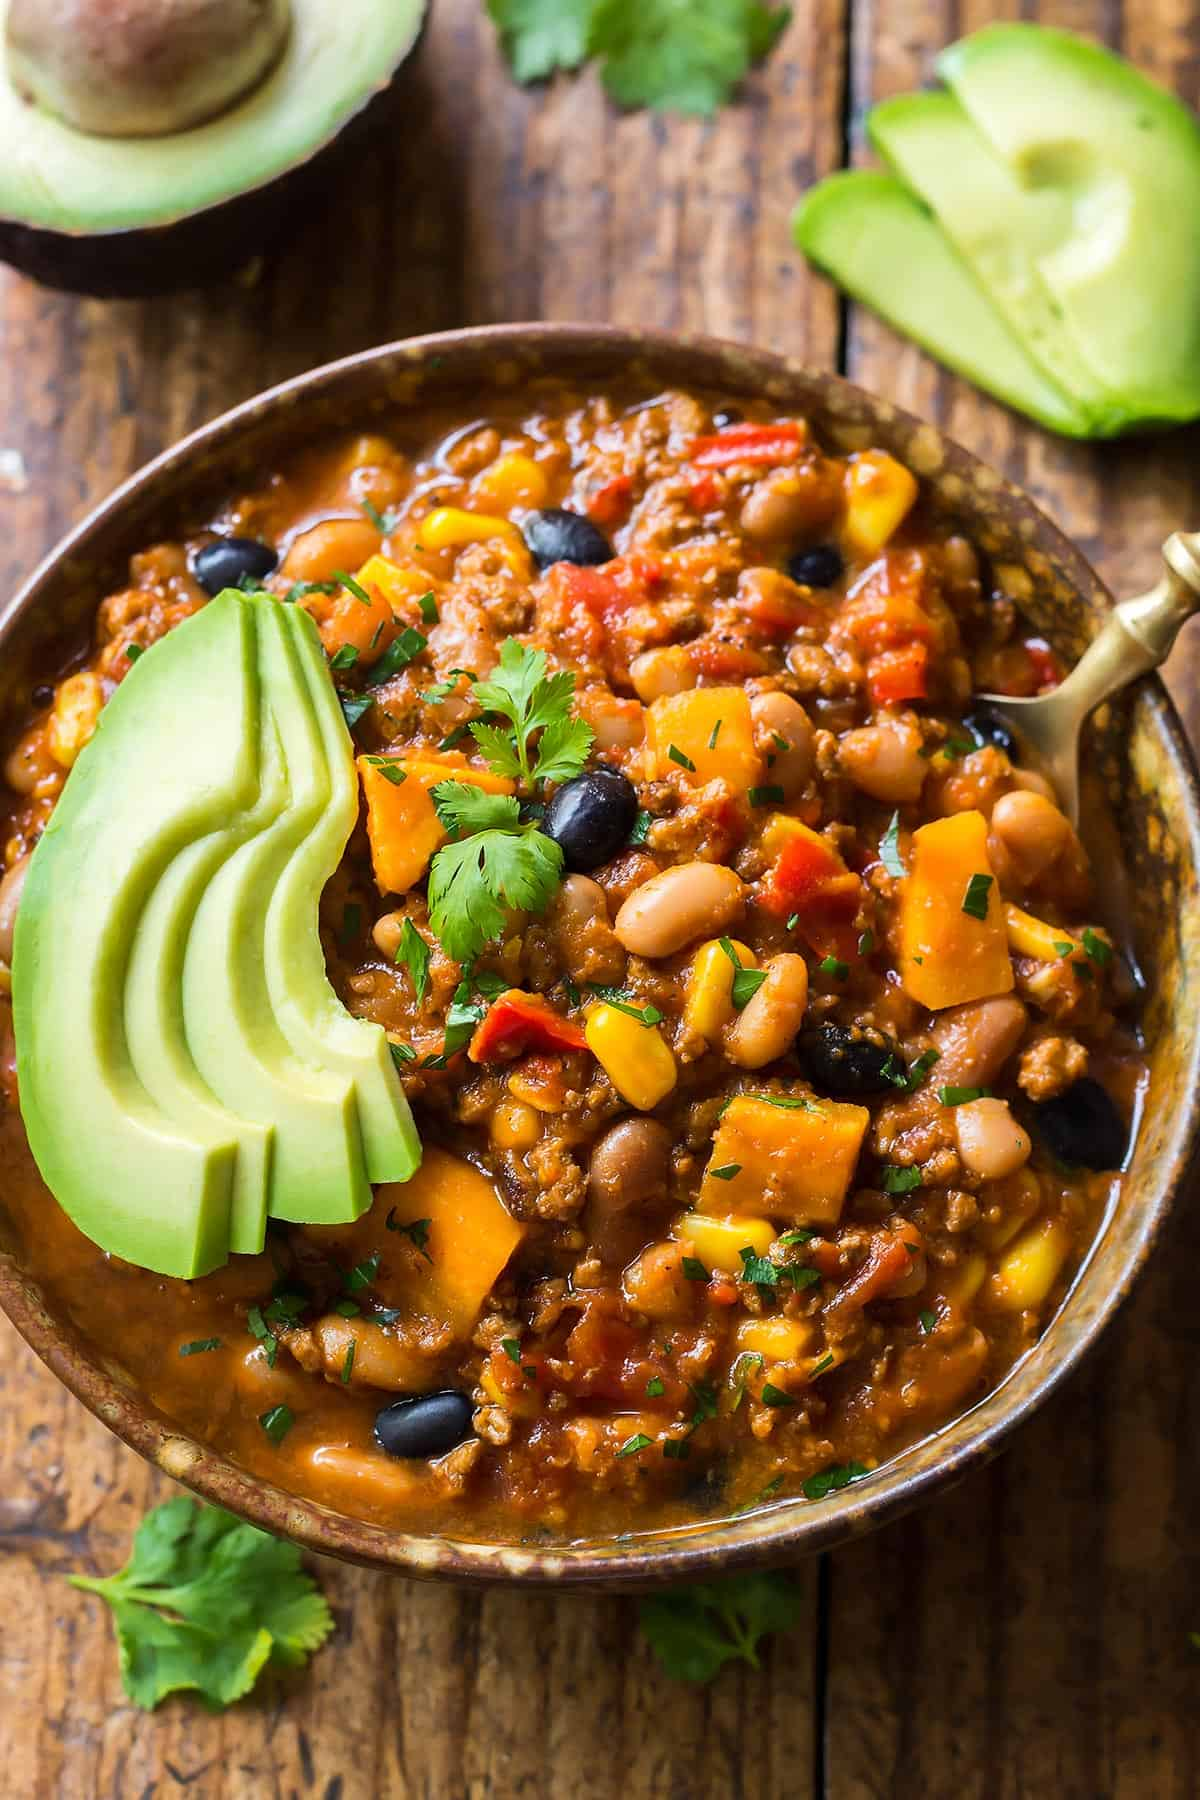 This amazing Instant Pot Chili is guaranteed to satisfy any comfort food cravings! The optional twist for Southwest Chili includes sweet potatoes and corn for a delicious sweet and spicy flavor kick.